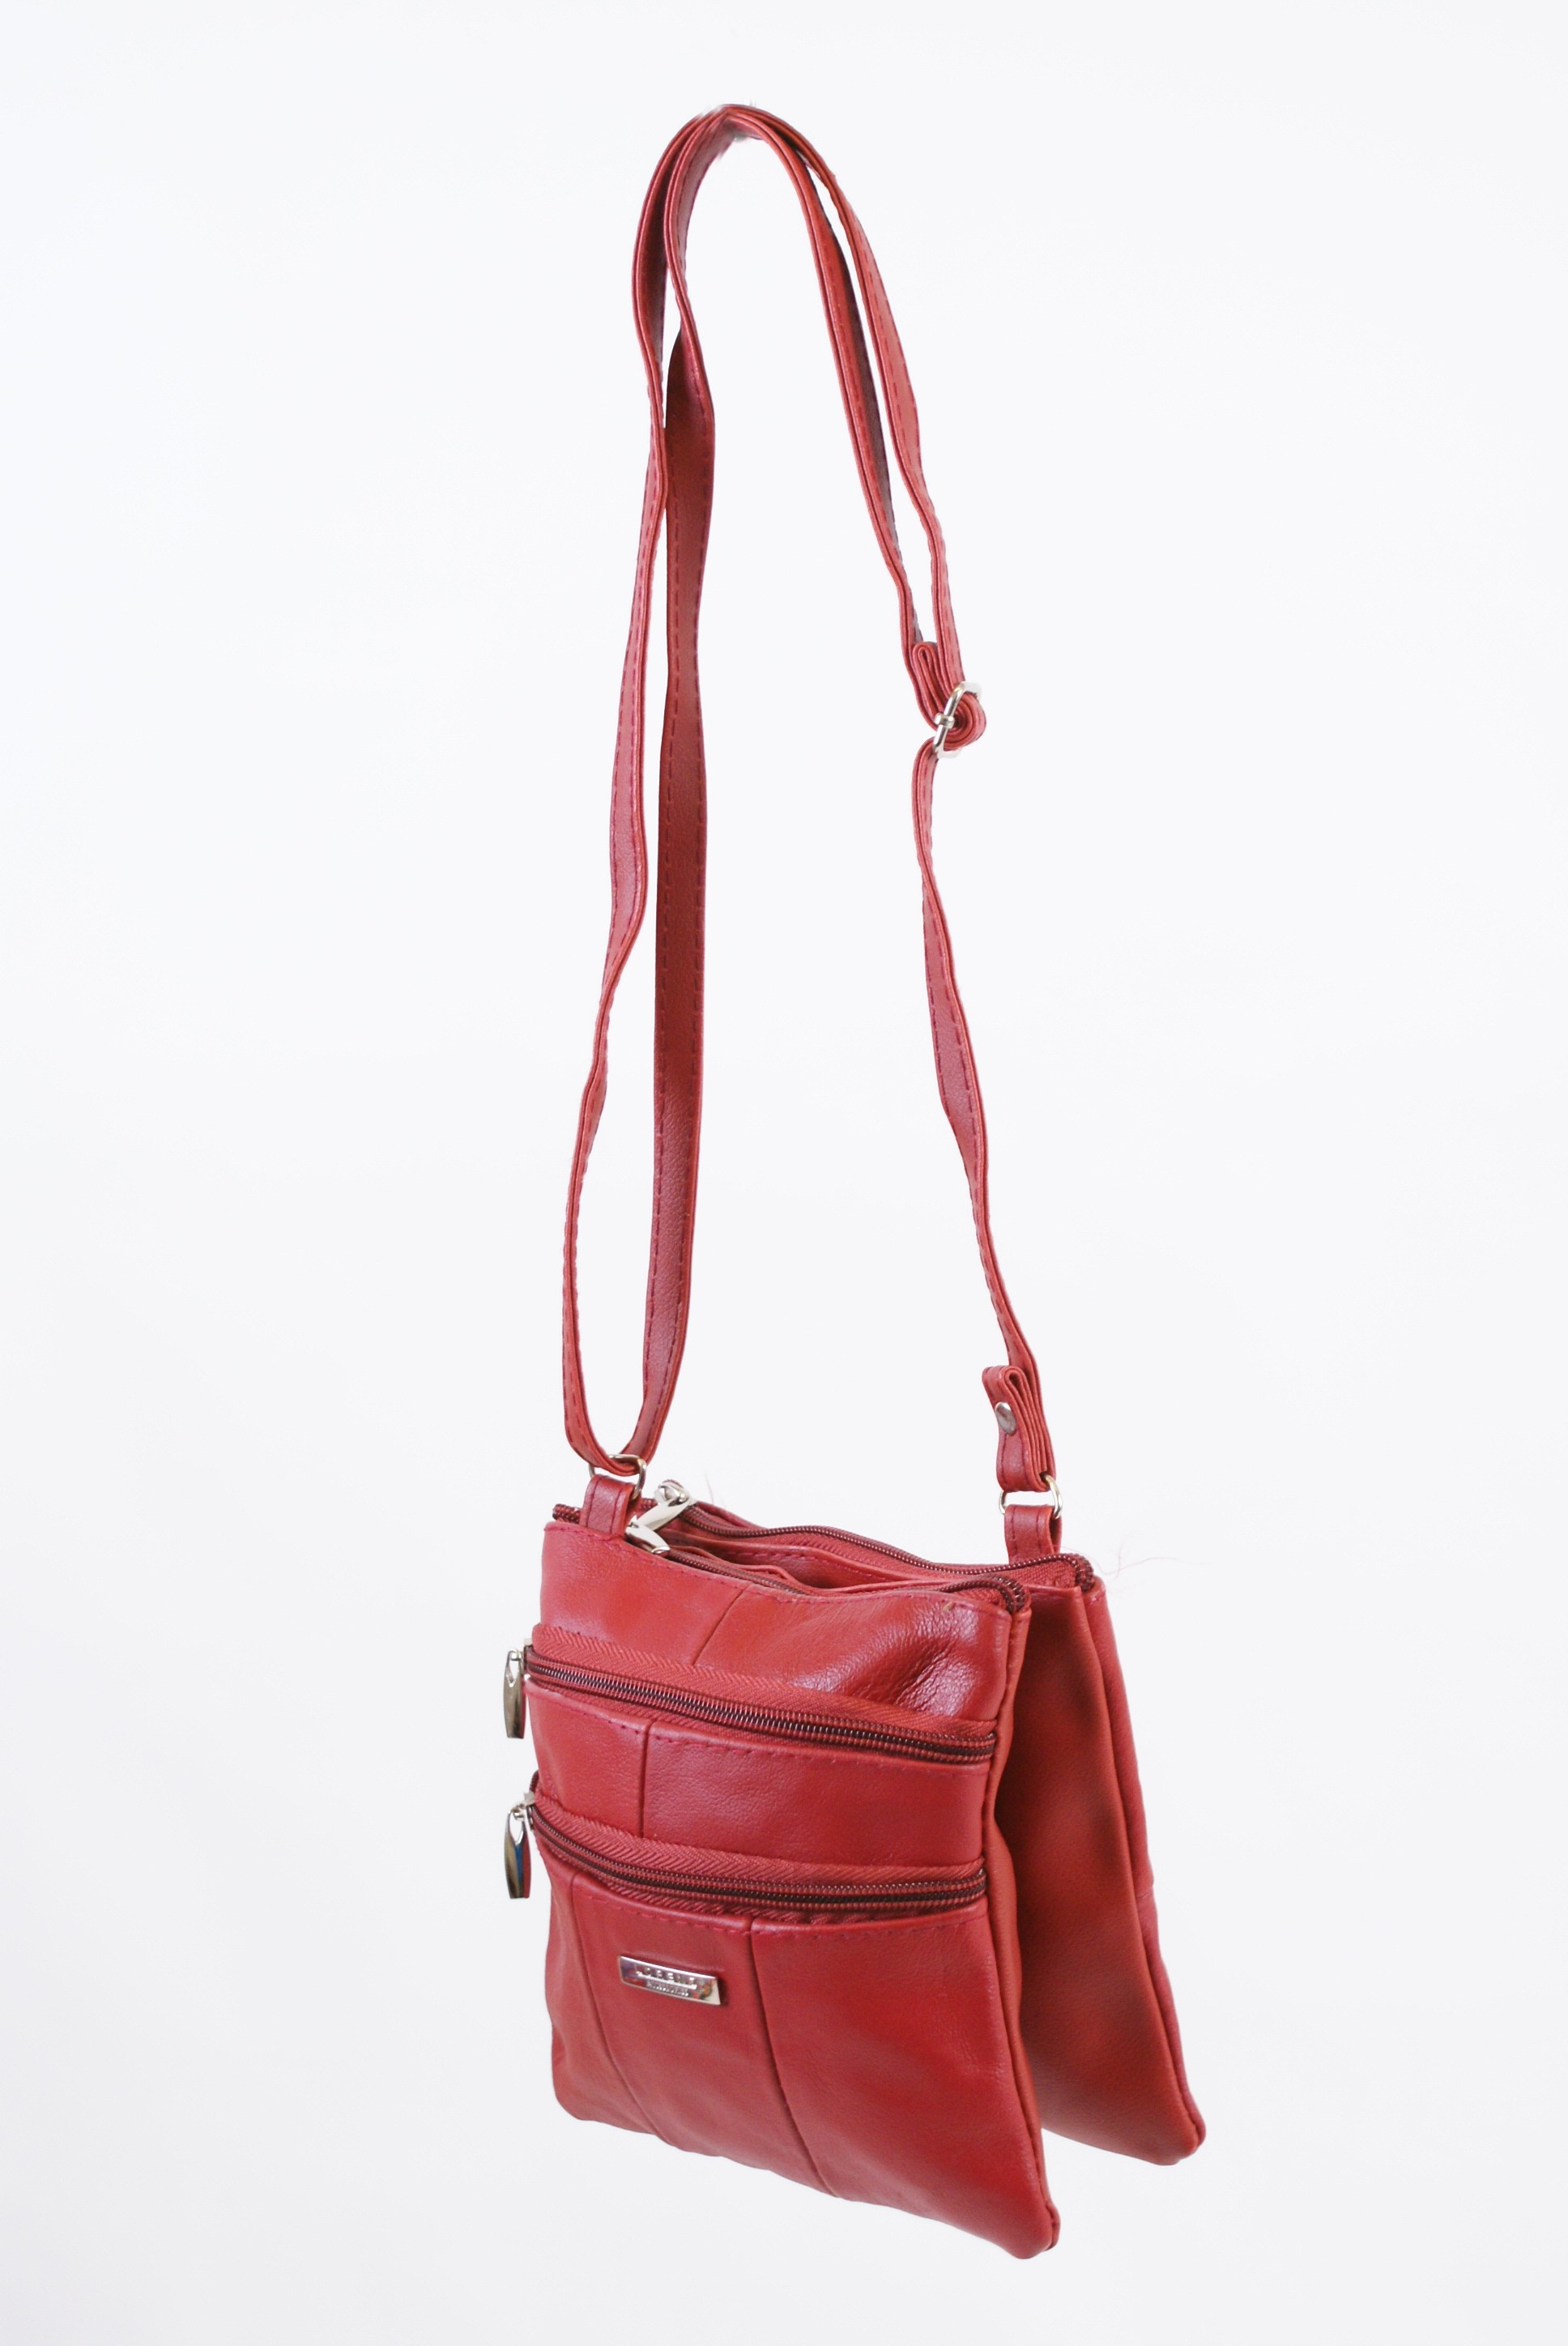 3766red